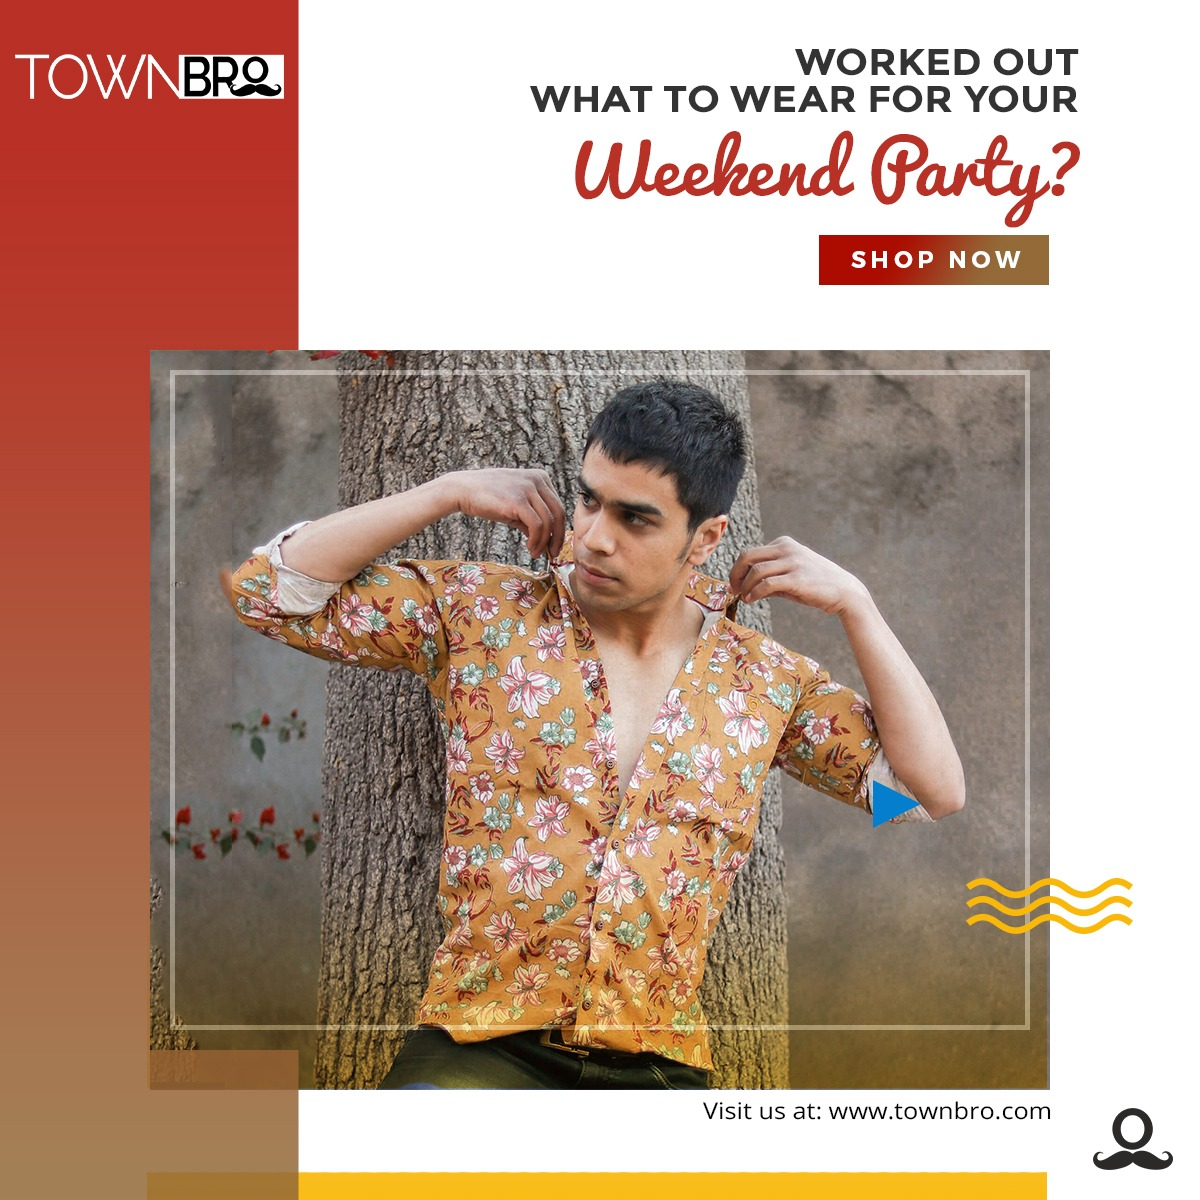 Who needs just another shirt? Bold things are happening this weekend. Grab it here: http://bit.ly/townbro222  #printedshirts #newstockalert #stockalert #mensfashion #indianfashion #townbro #trendingnow #GetTheLook #Instastyle #streetstyle #menswear #udaipur #jodhpur #shirtspic.twitter.com/Nsztm8Dzij